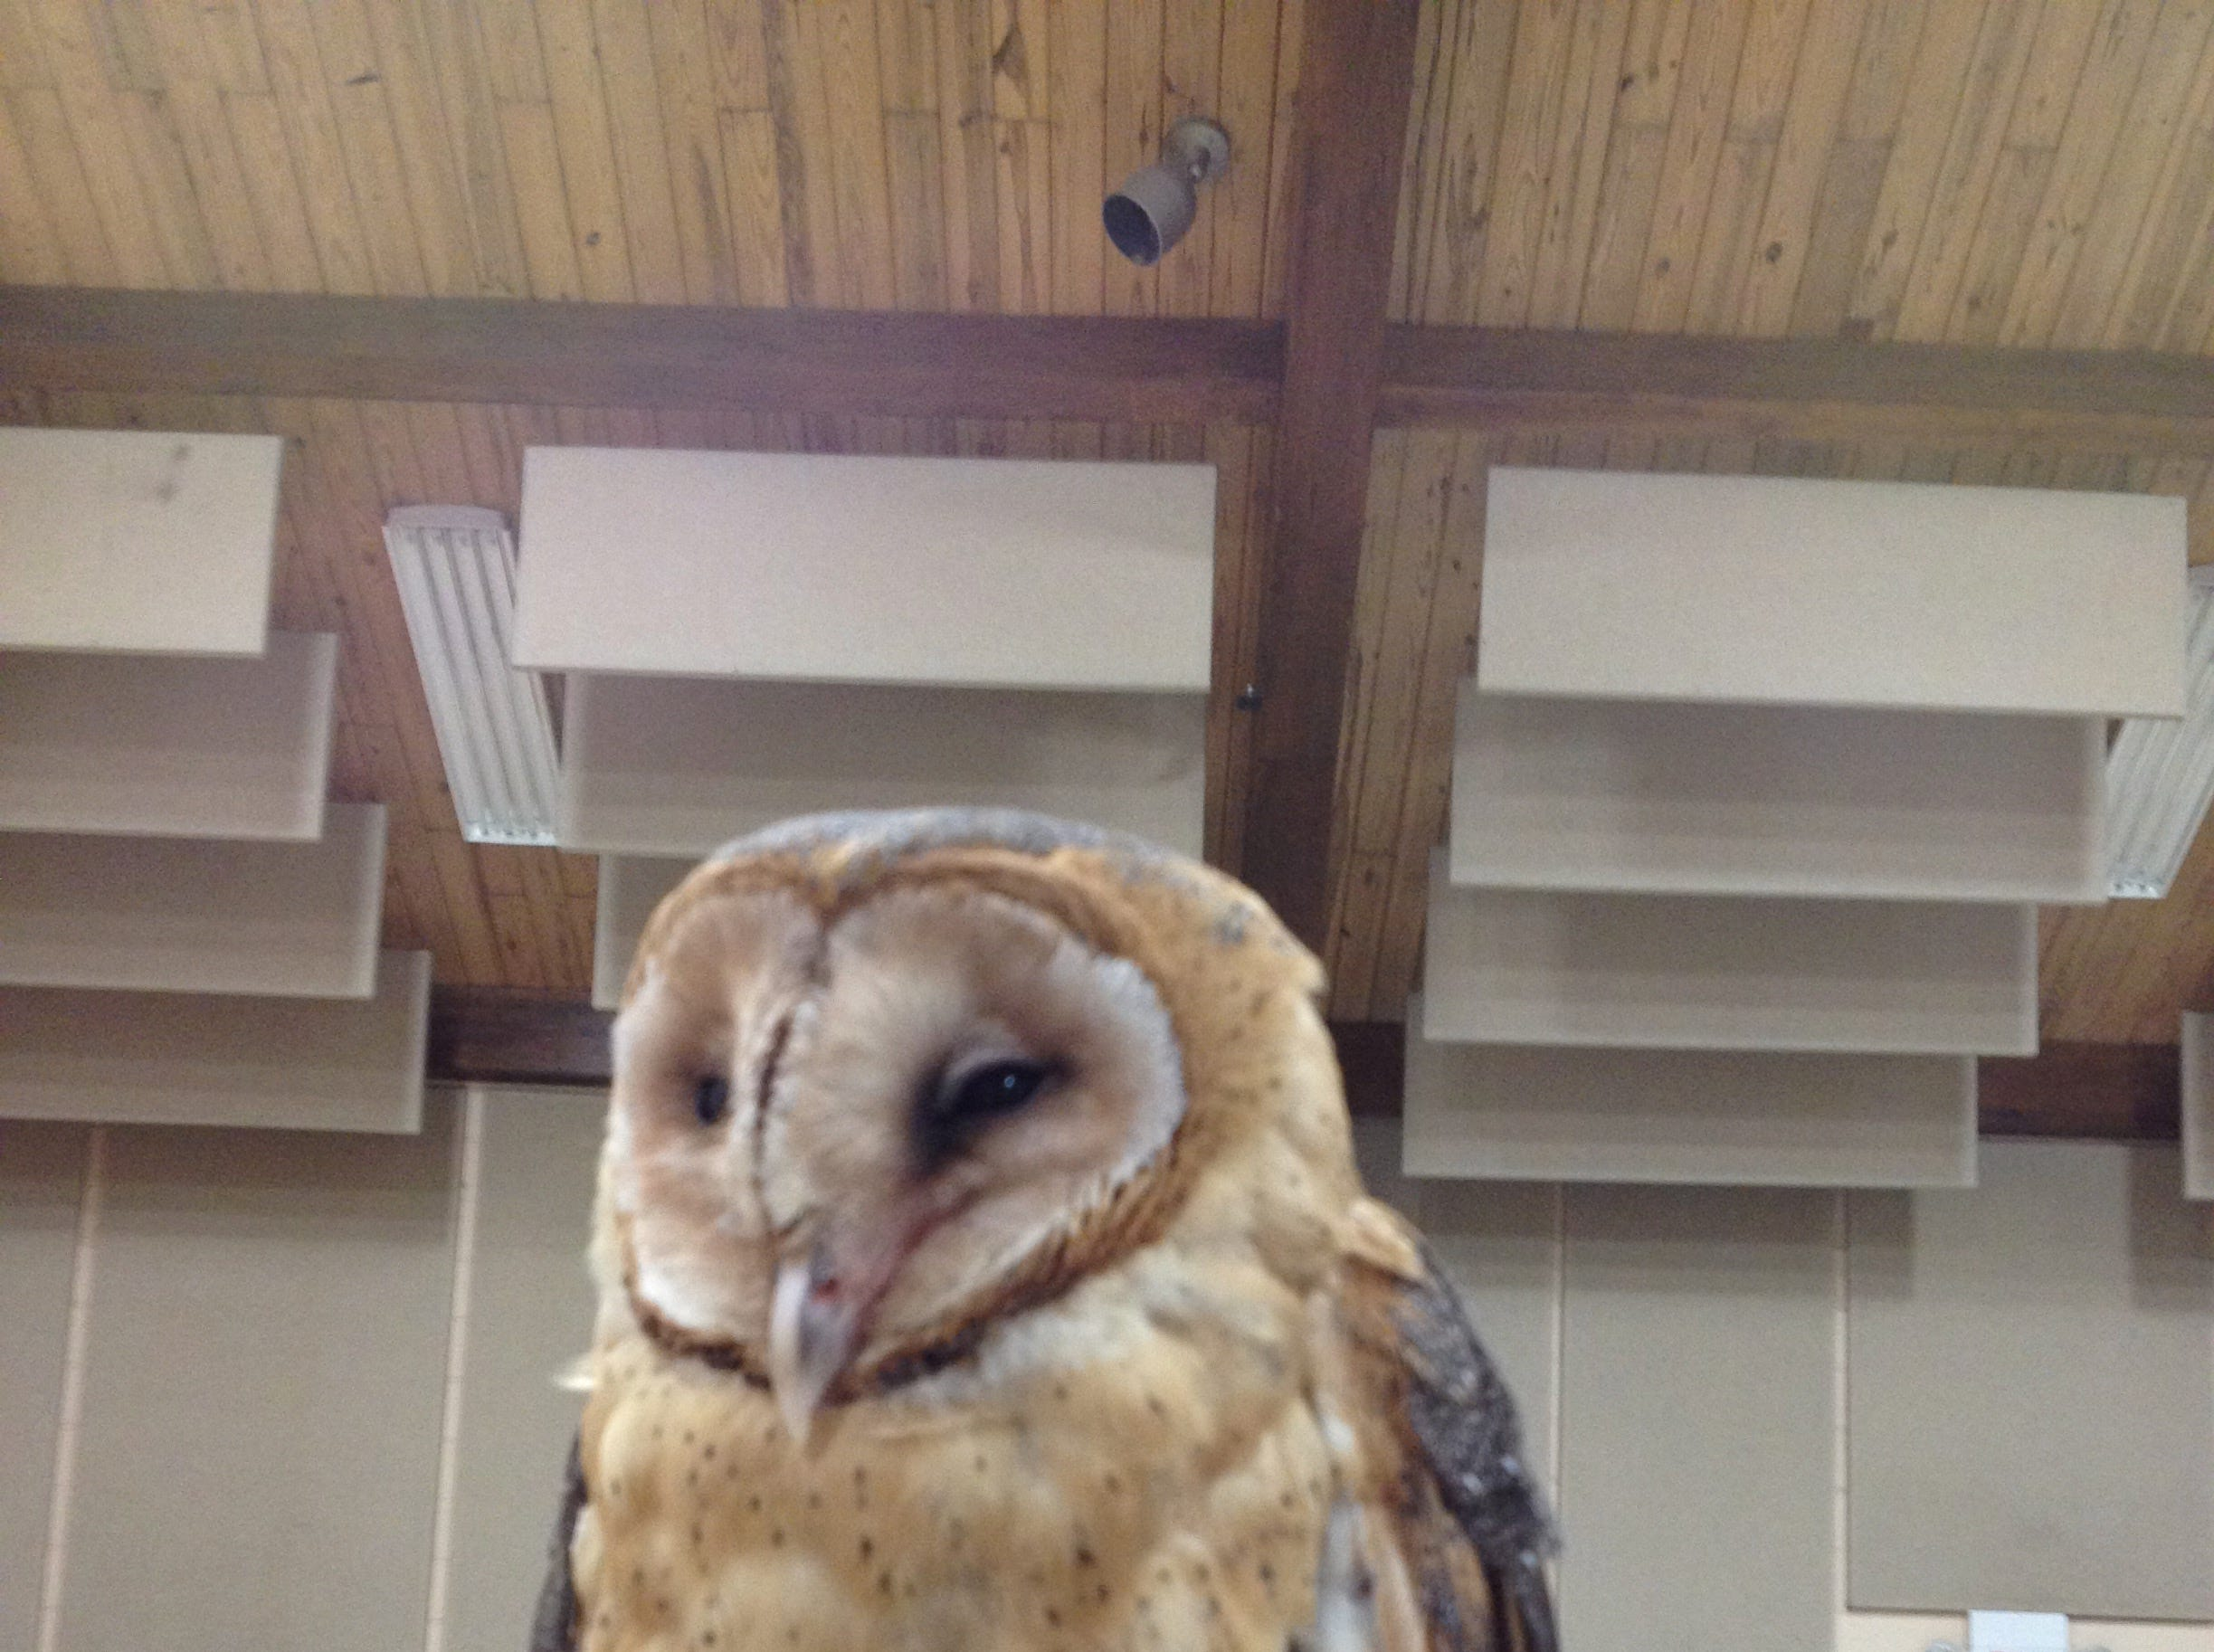 Birds of prey, like this owl, are part of an educational program that takes place at the Reelfoot Lake State Park Visitors Center.